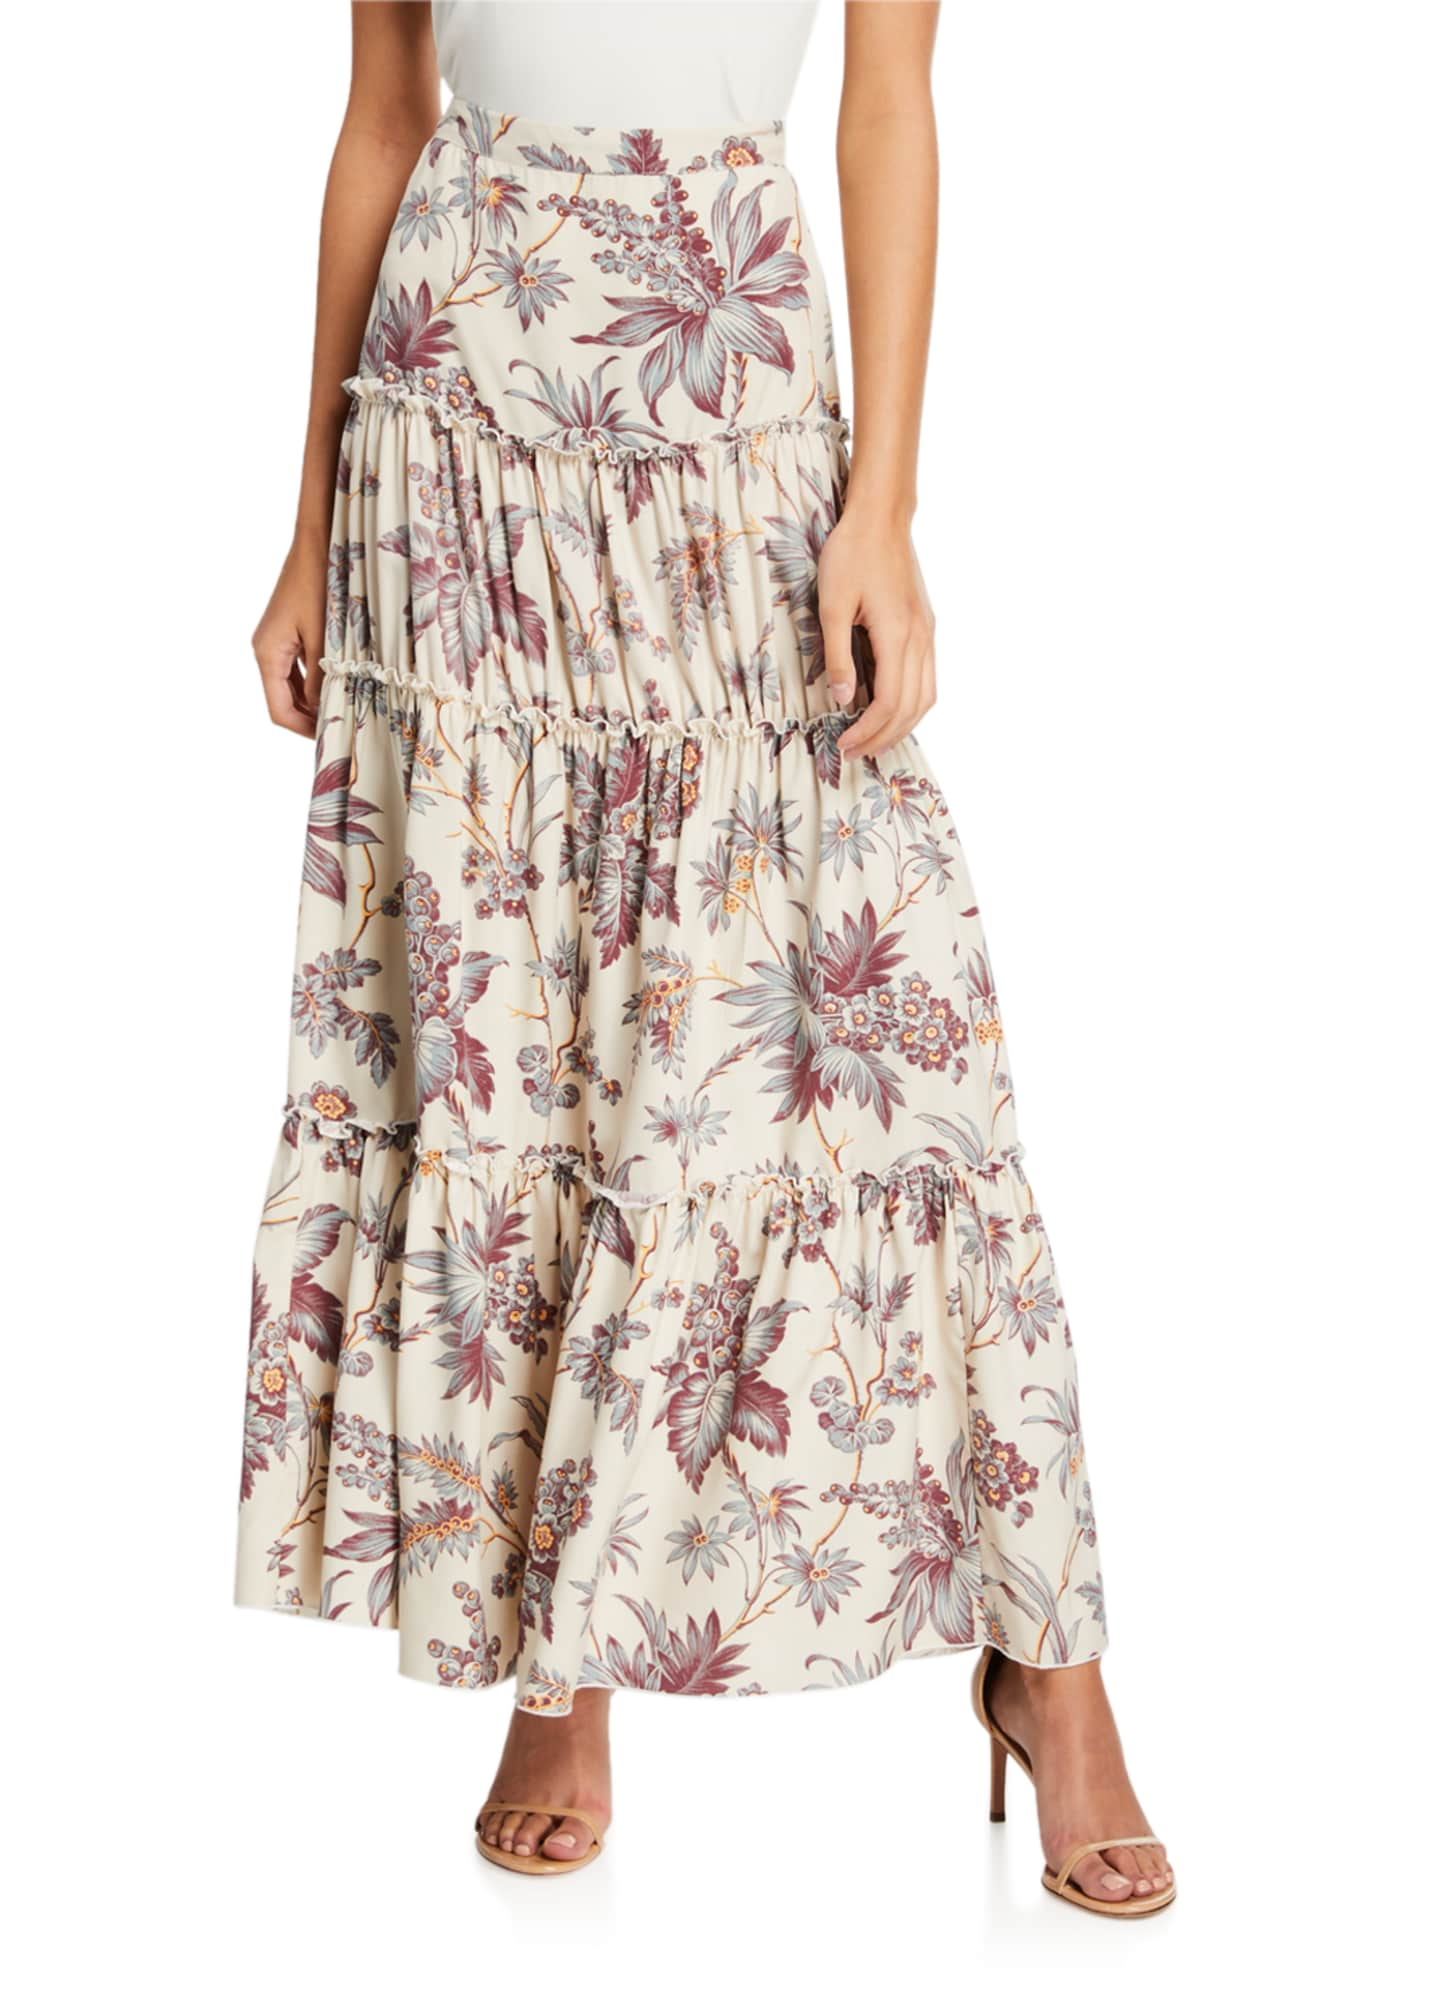 SIR The Label Avery Tiered Floral Maxi Skirt